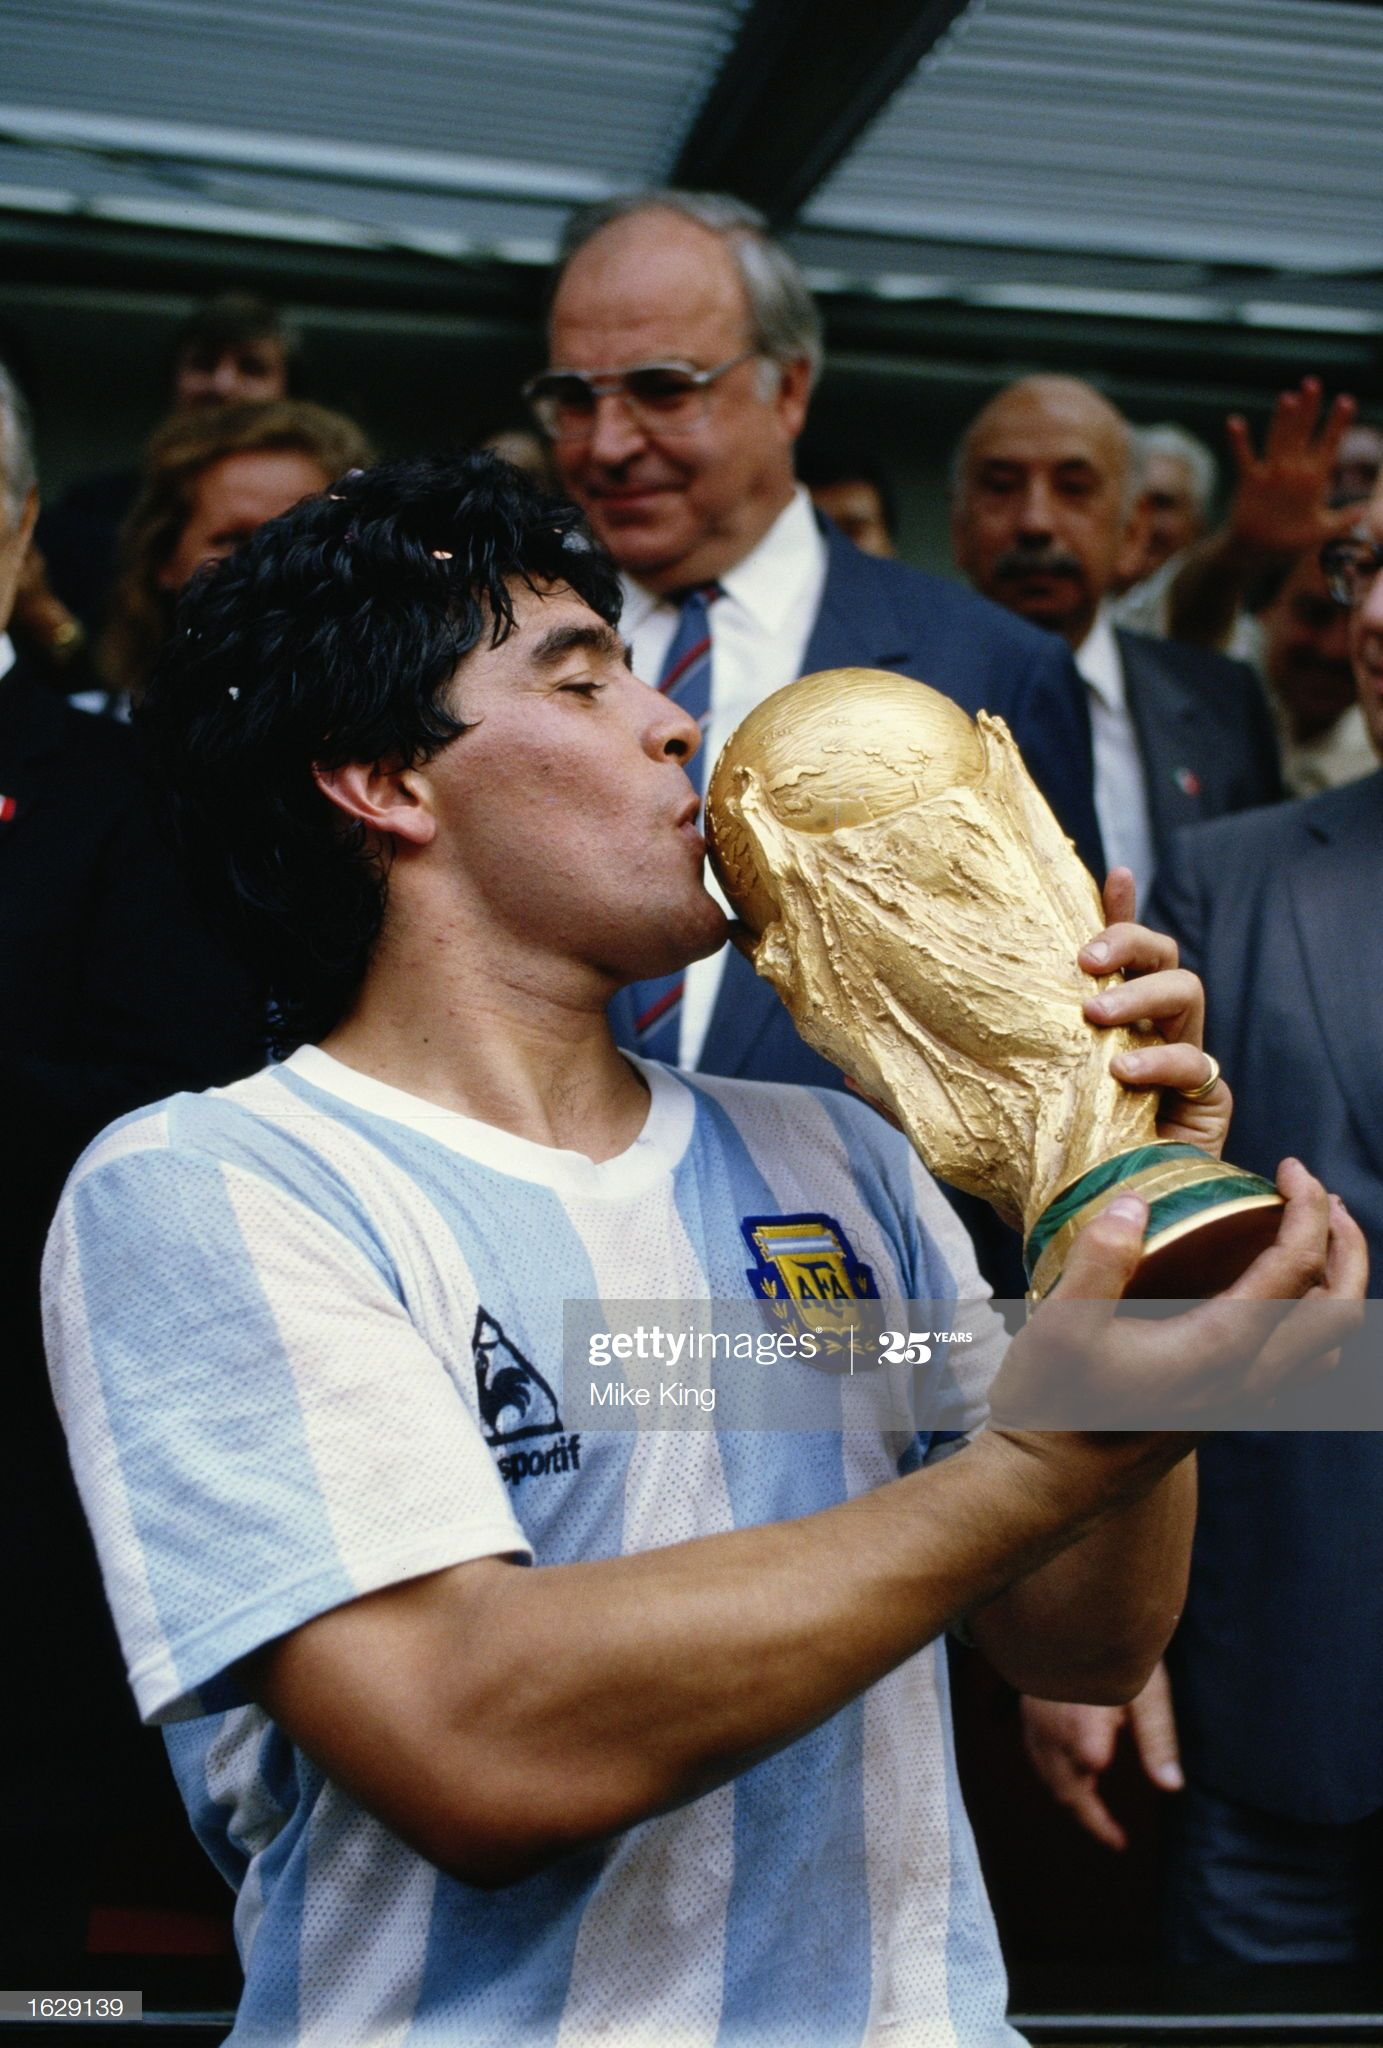 Diego Maradona Of Argentina Kisses The Trophy After The World Cup In 2020 Diego Maradona Football Images World Cup